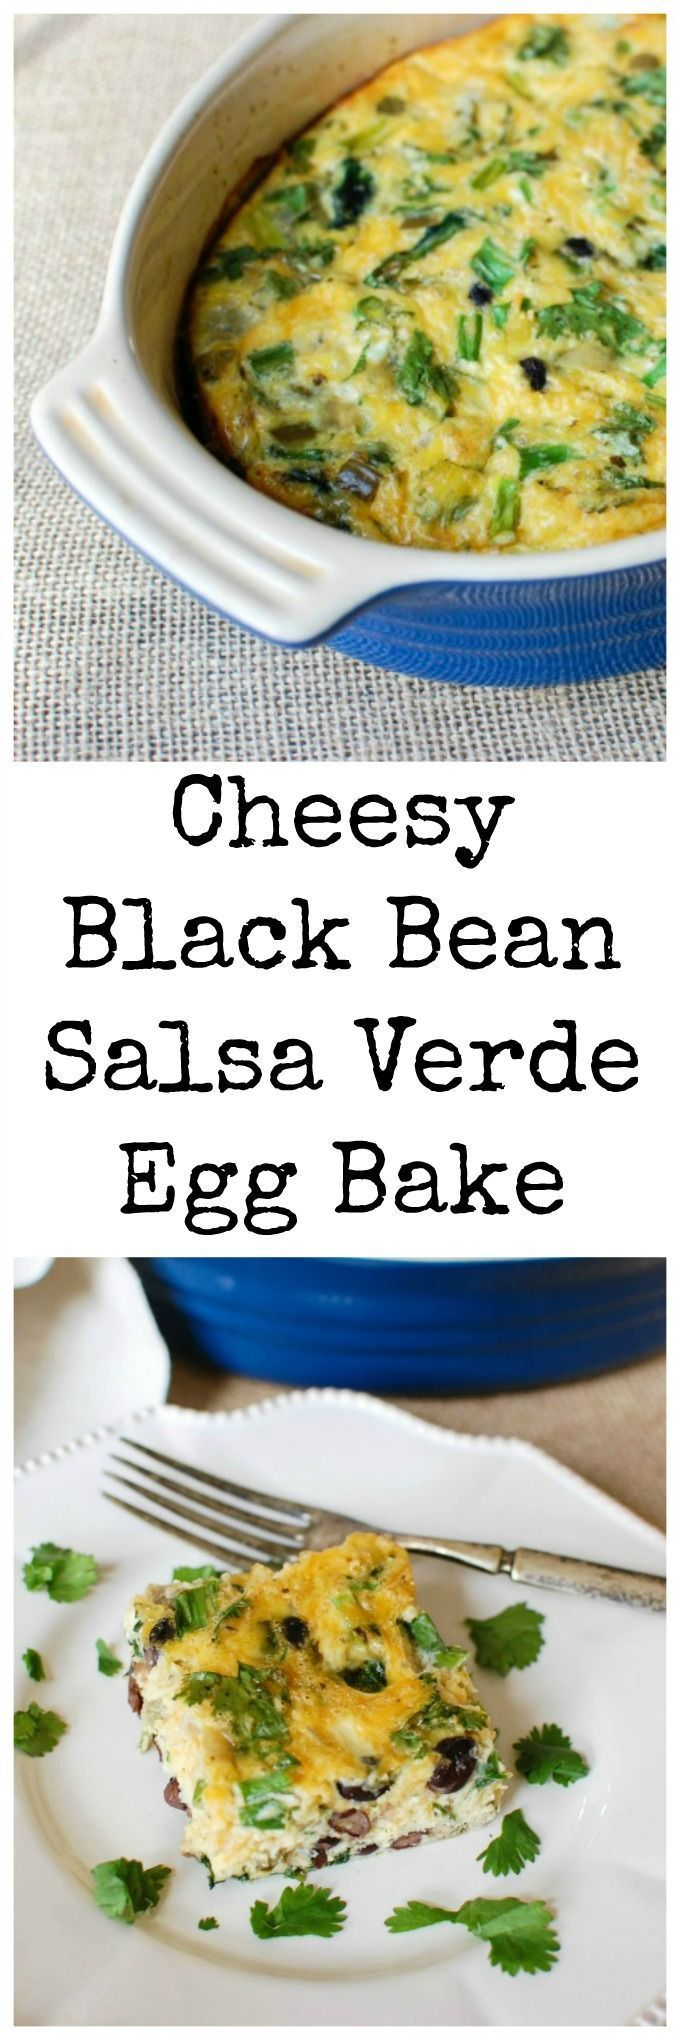 Egg Bake has Southwestern flavors that mix together with spinach, egg ...